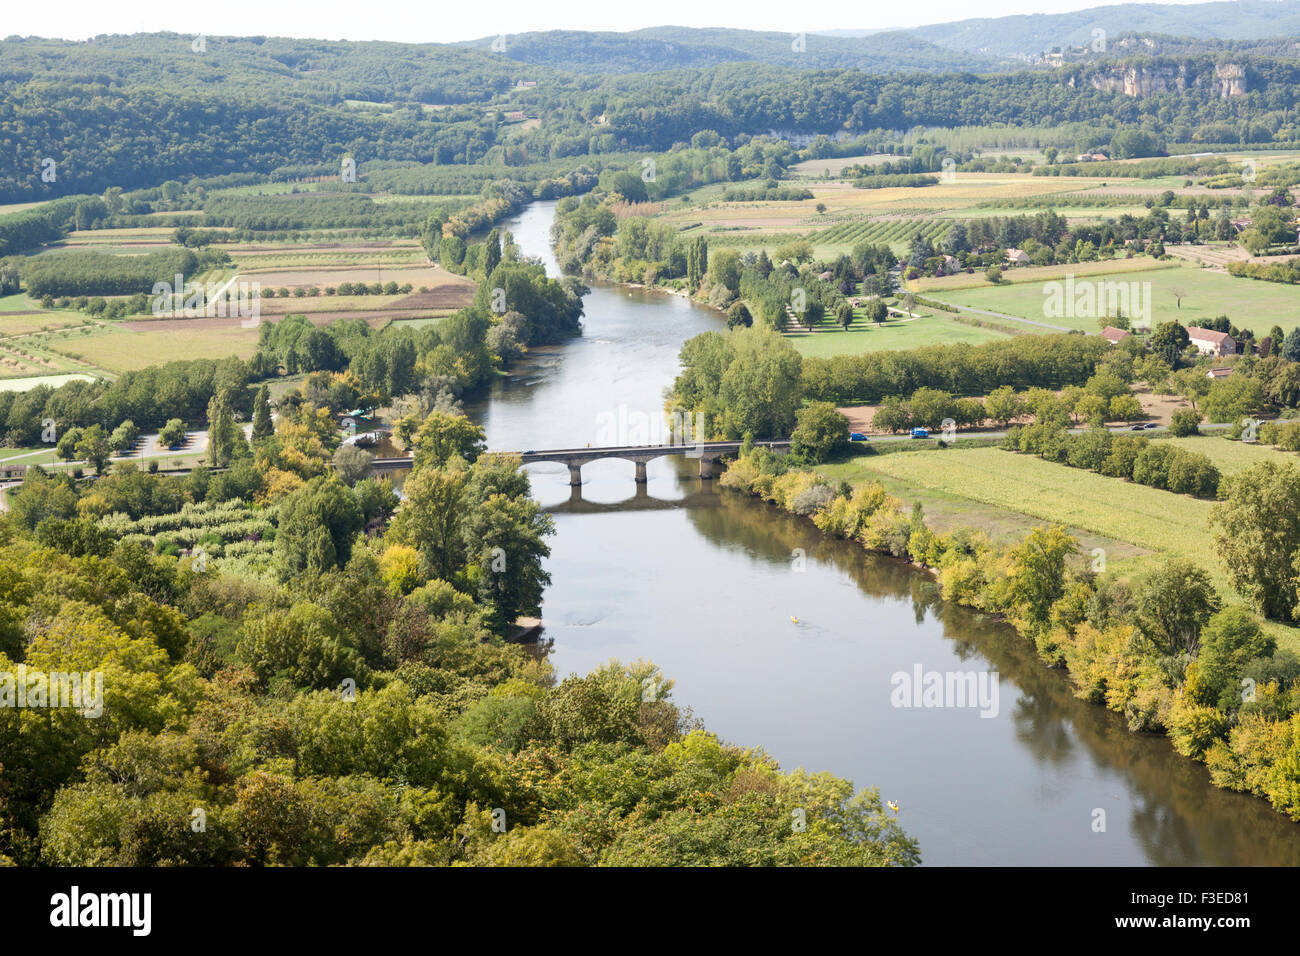 The plain in the countryside of Perigord and the Dordogne river seen from the vantage point of Domme. Campagne Périgourdine. - Stock Image